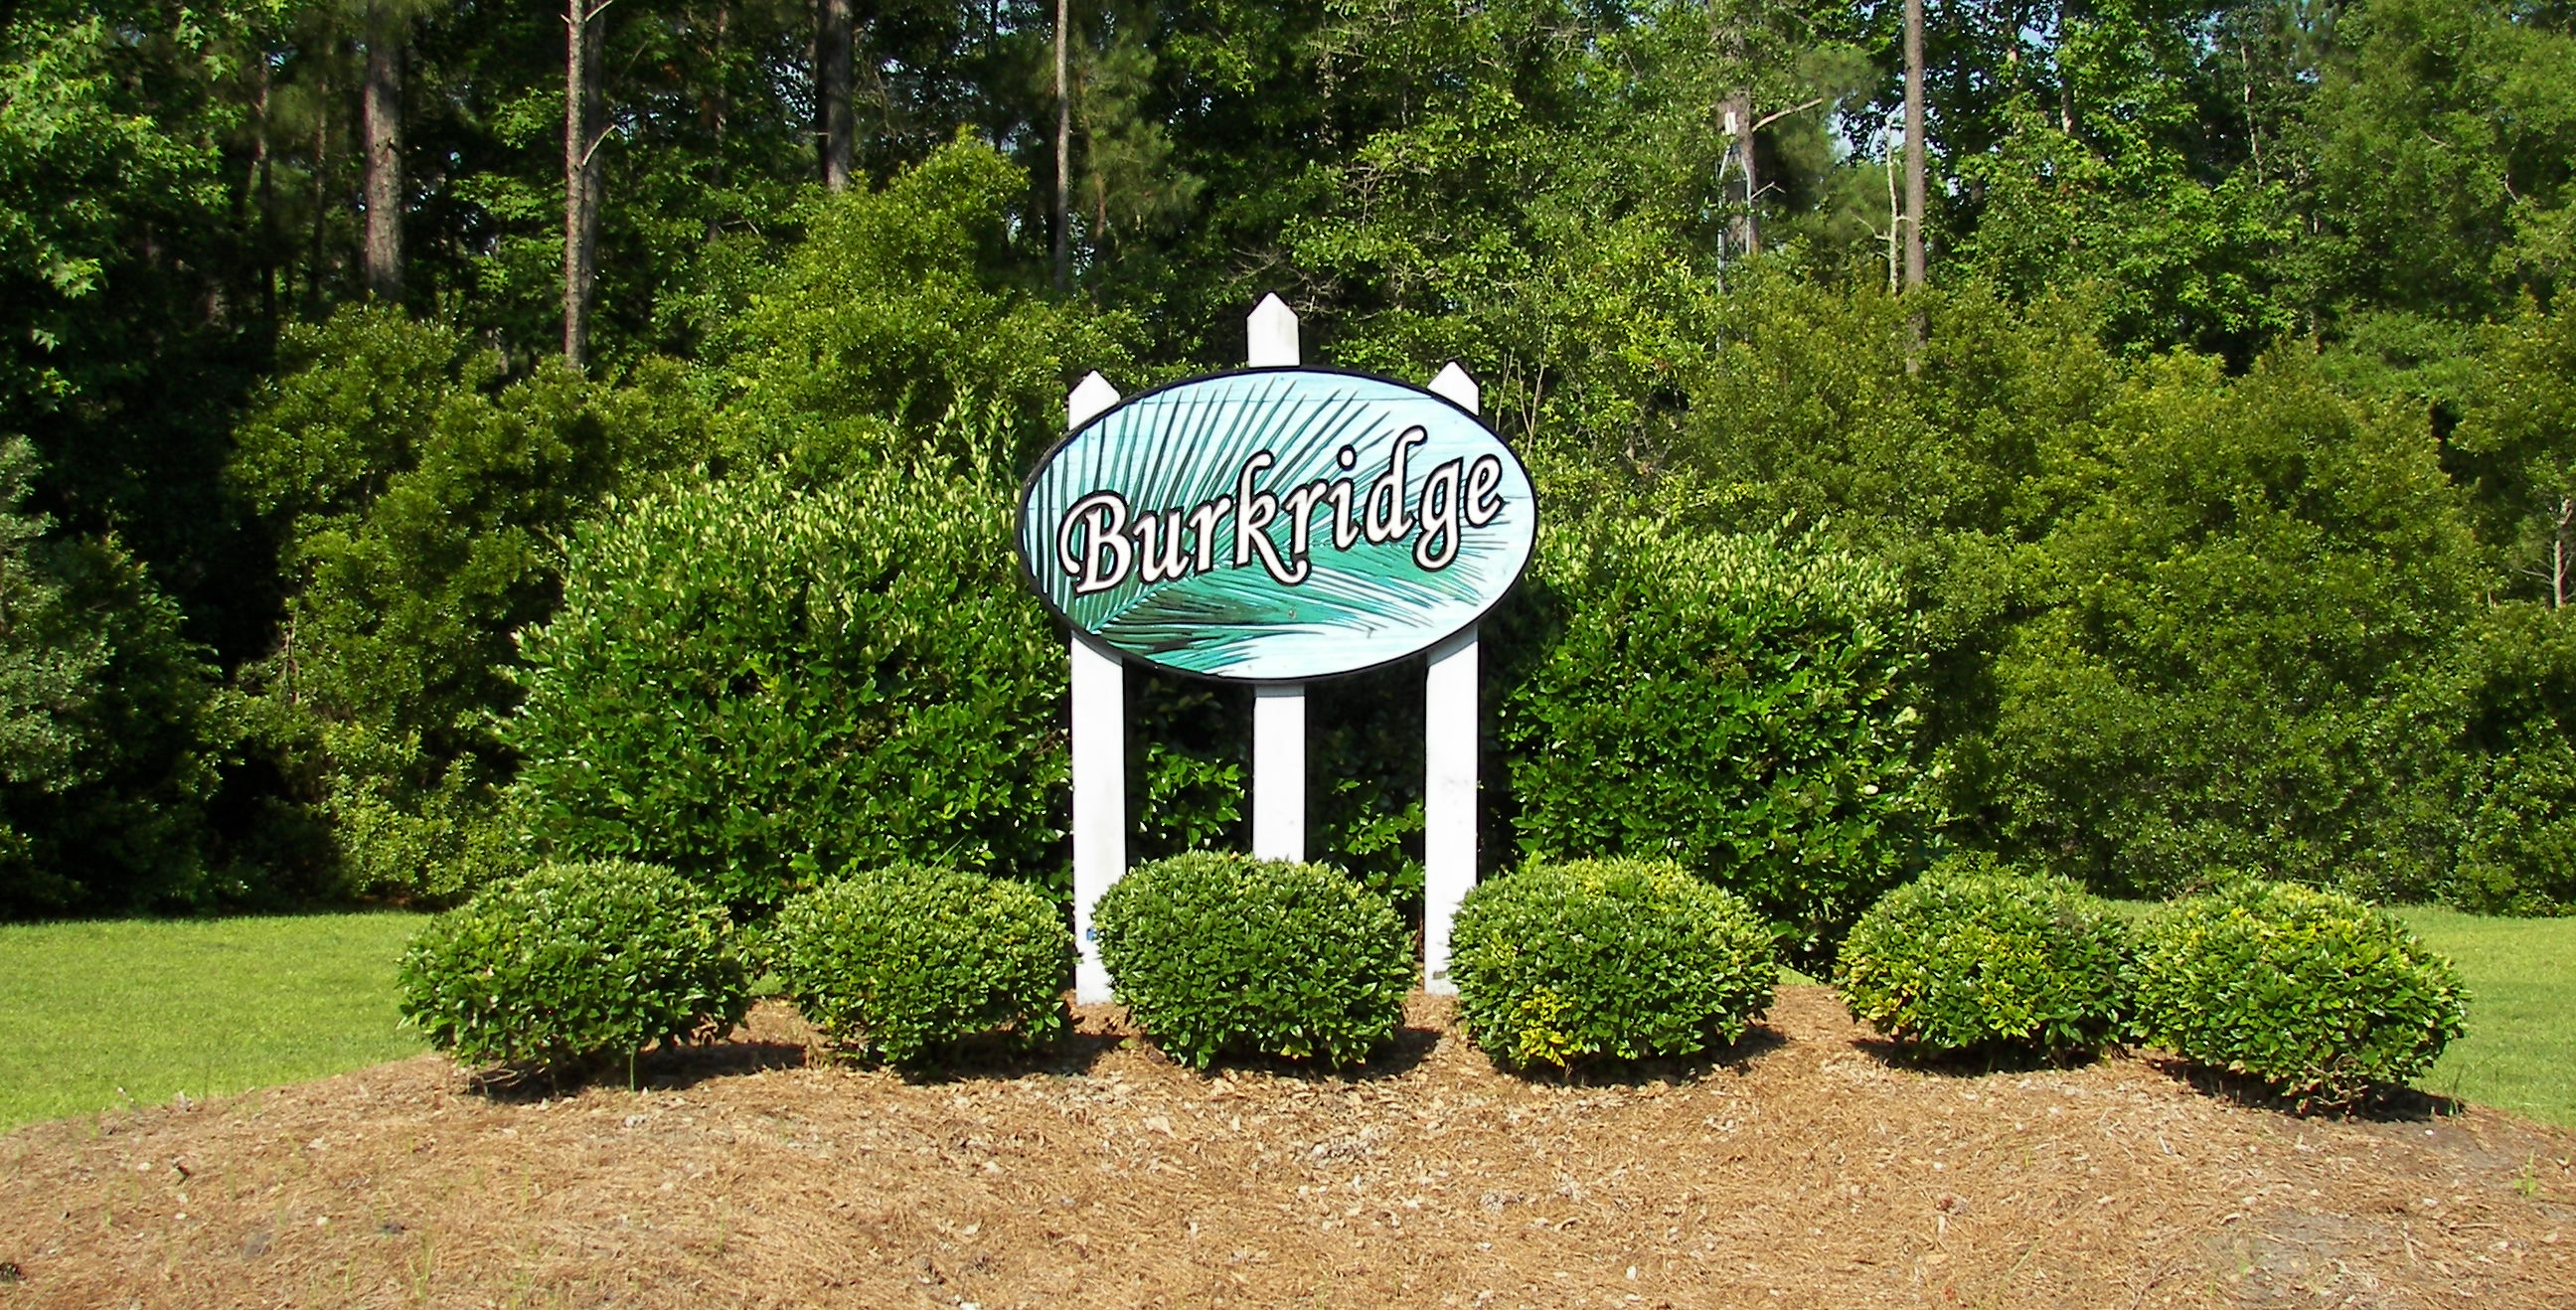 Burkridge - Cedar Woods | Myrtle Beach Real Estate :: Matt Harper ...